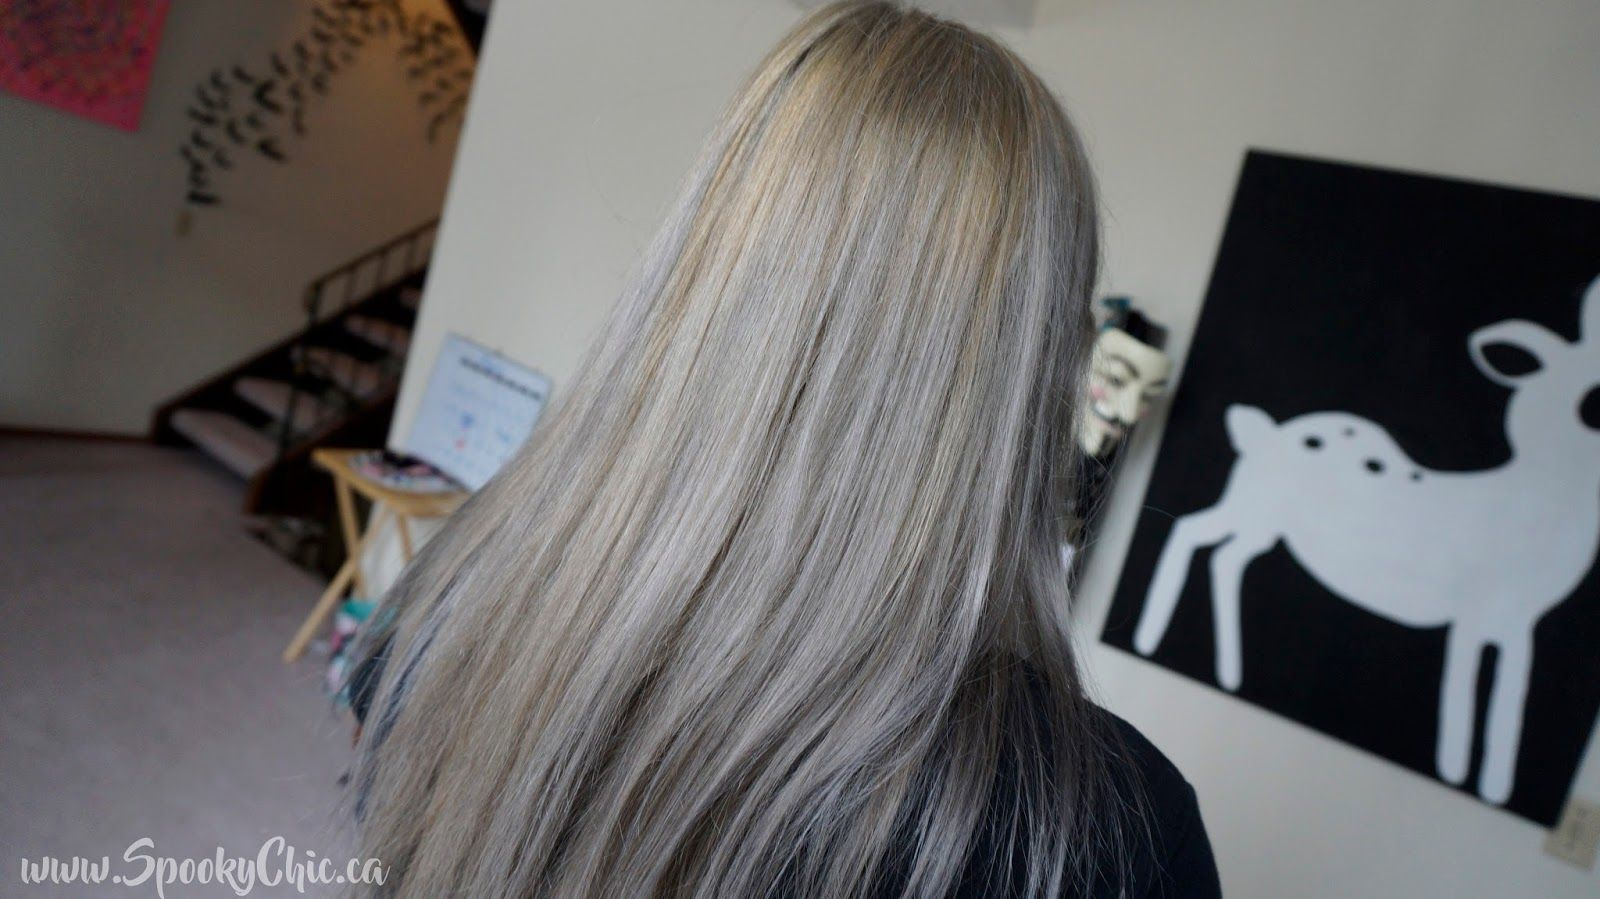 Chrome Before After With Ion Chrome Demi Permanent Creme Hair Color In Chrome Spooky Chic Chrome Hair Color Ion Hair Colors Demi Permanent